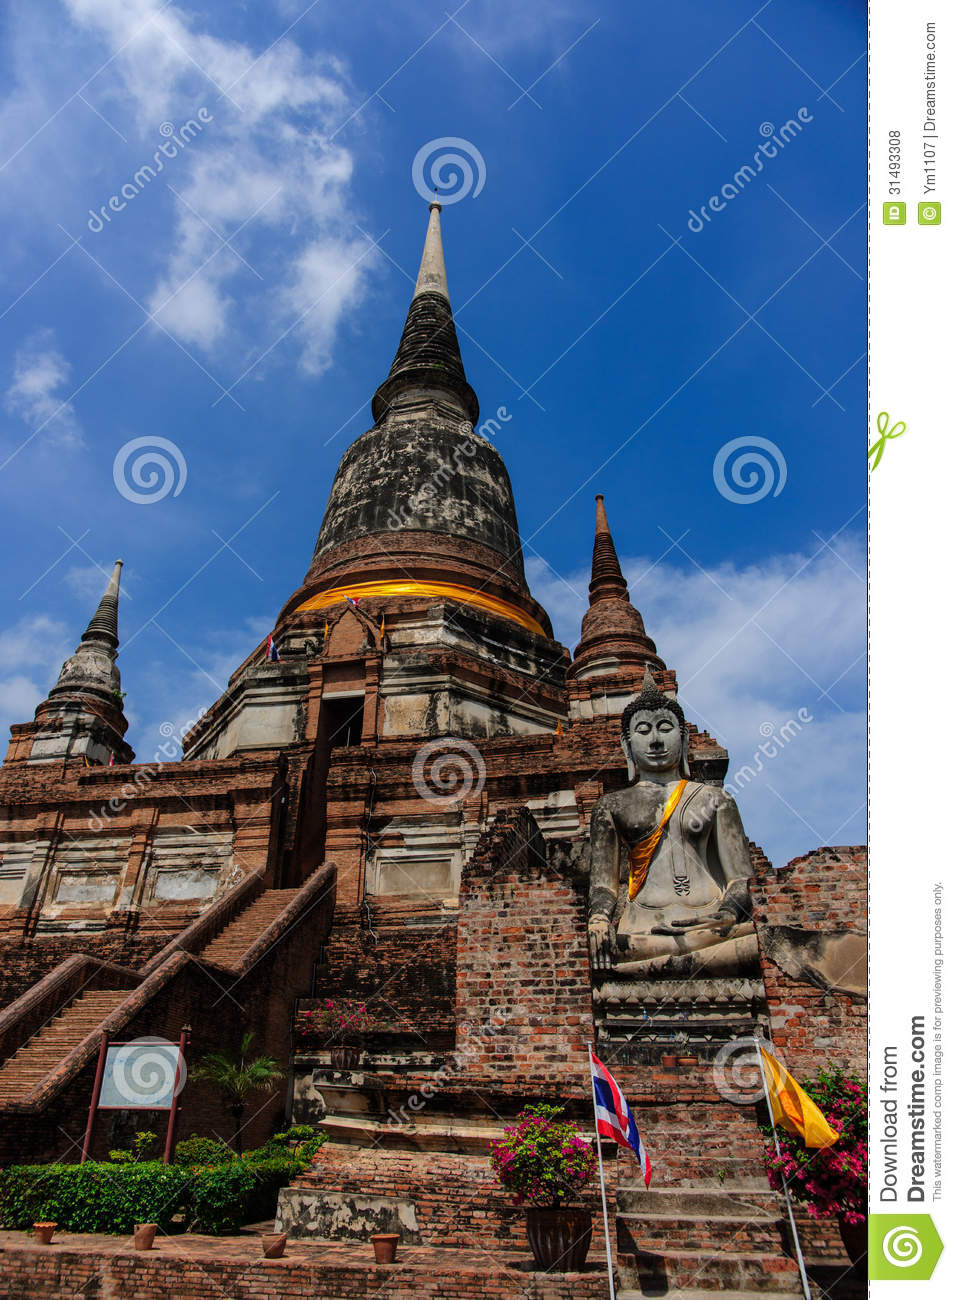 Wat Yai Chai Mongkol Temple Royalty Free Stock Photos ...